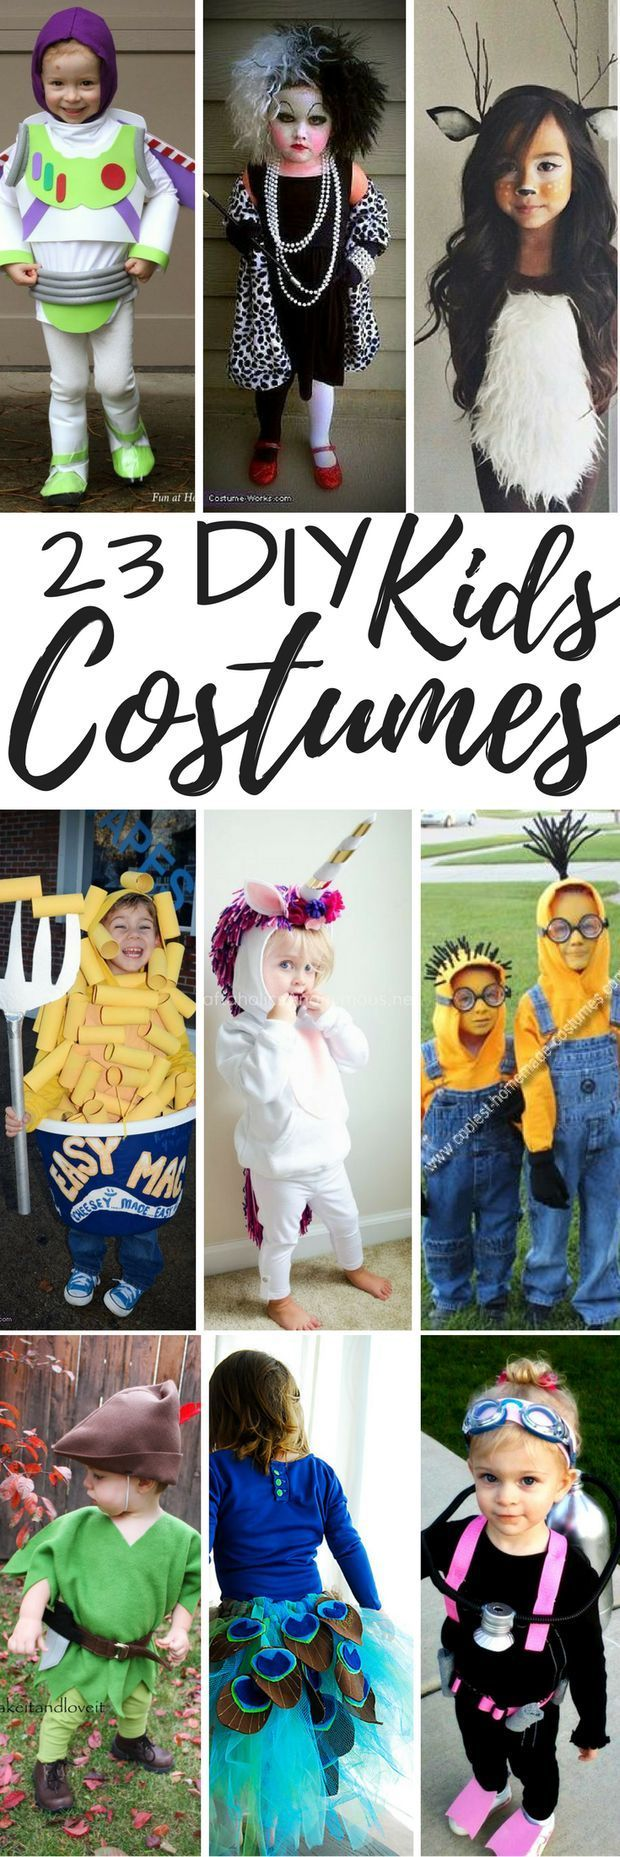 210 best halloween images on pinterest halloween stuff 23 diy halloween costumes for kids save money this year and make it at home